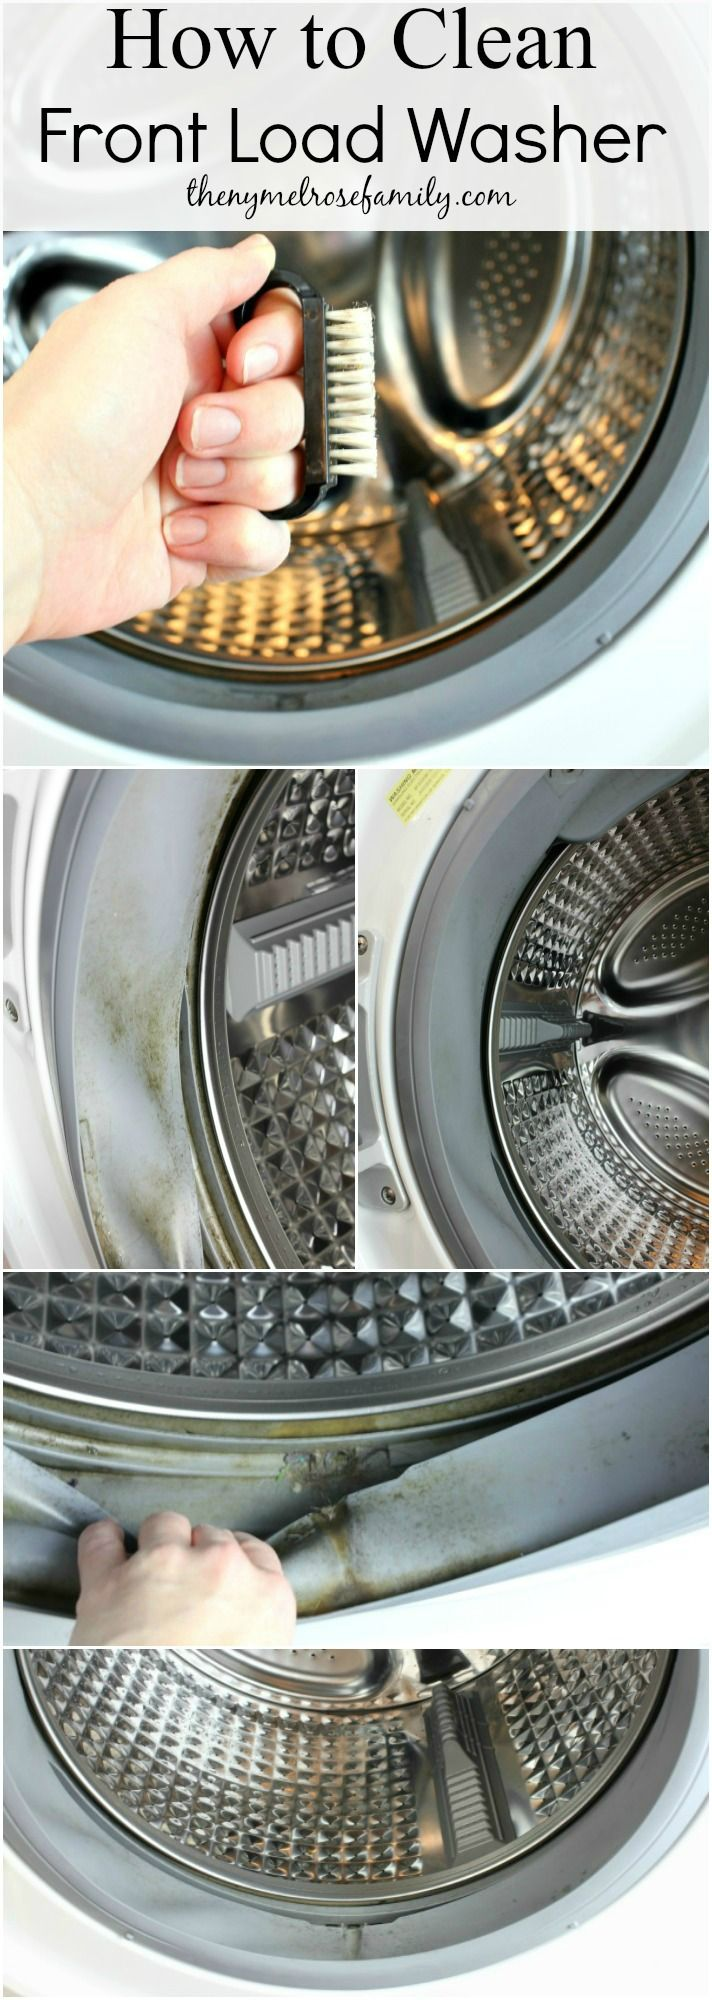 How to Clean your Front Load Washer so that it sparkles and SMELLS clean!: